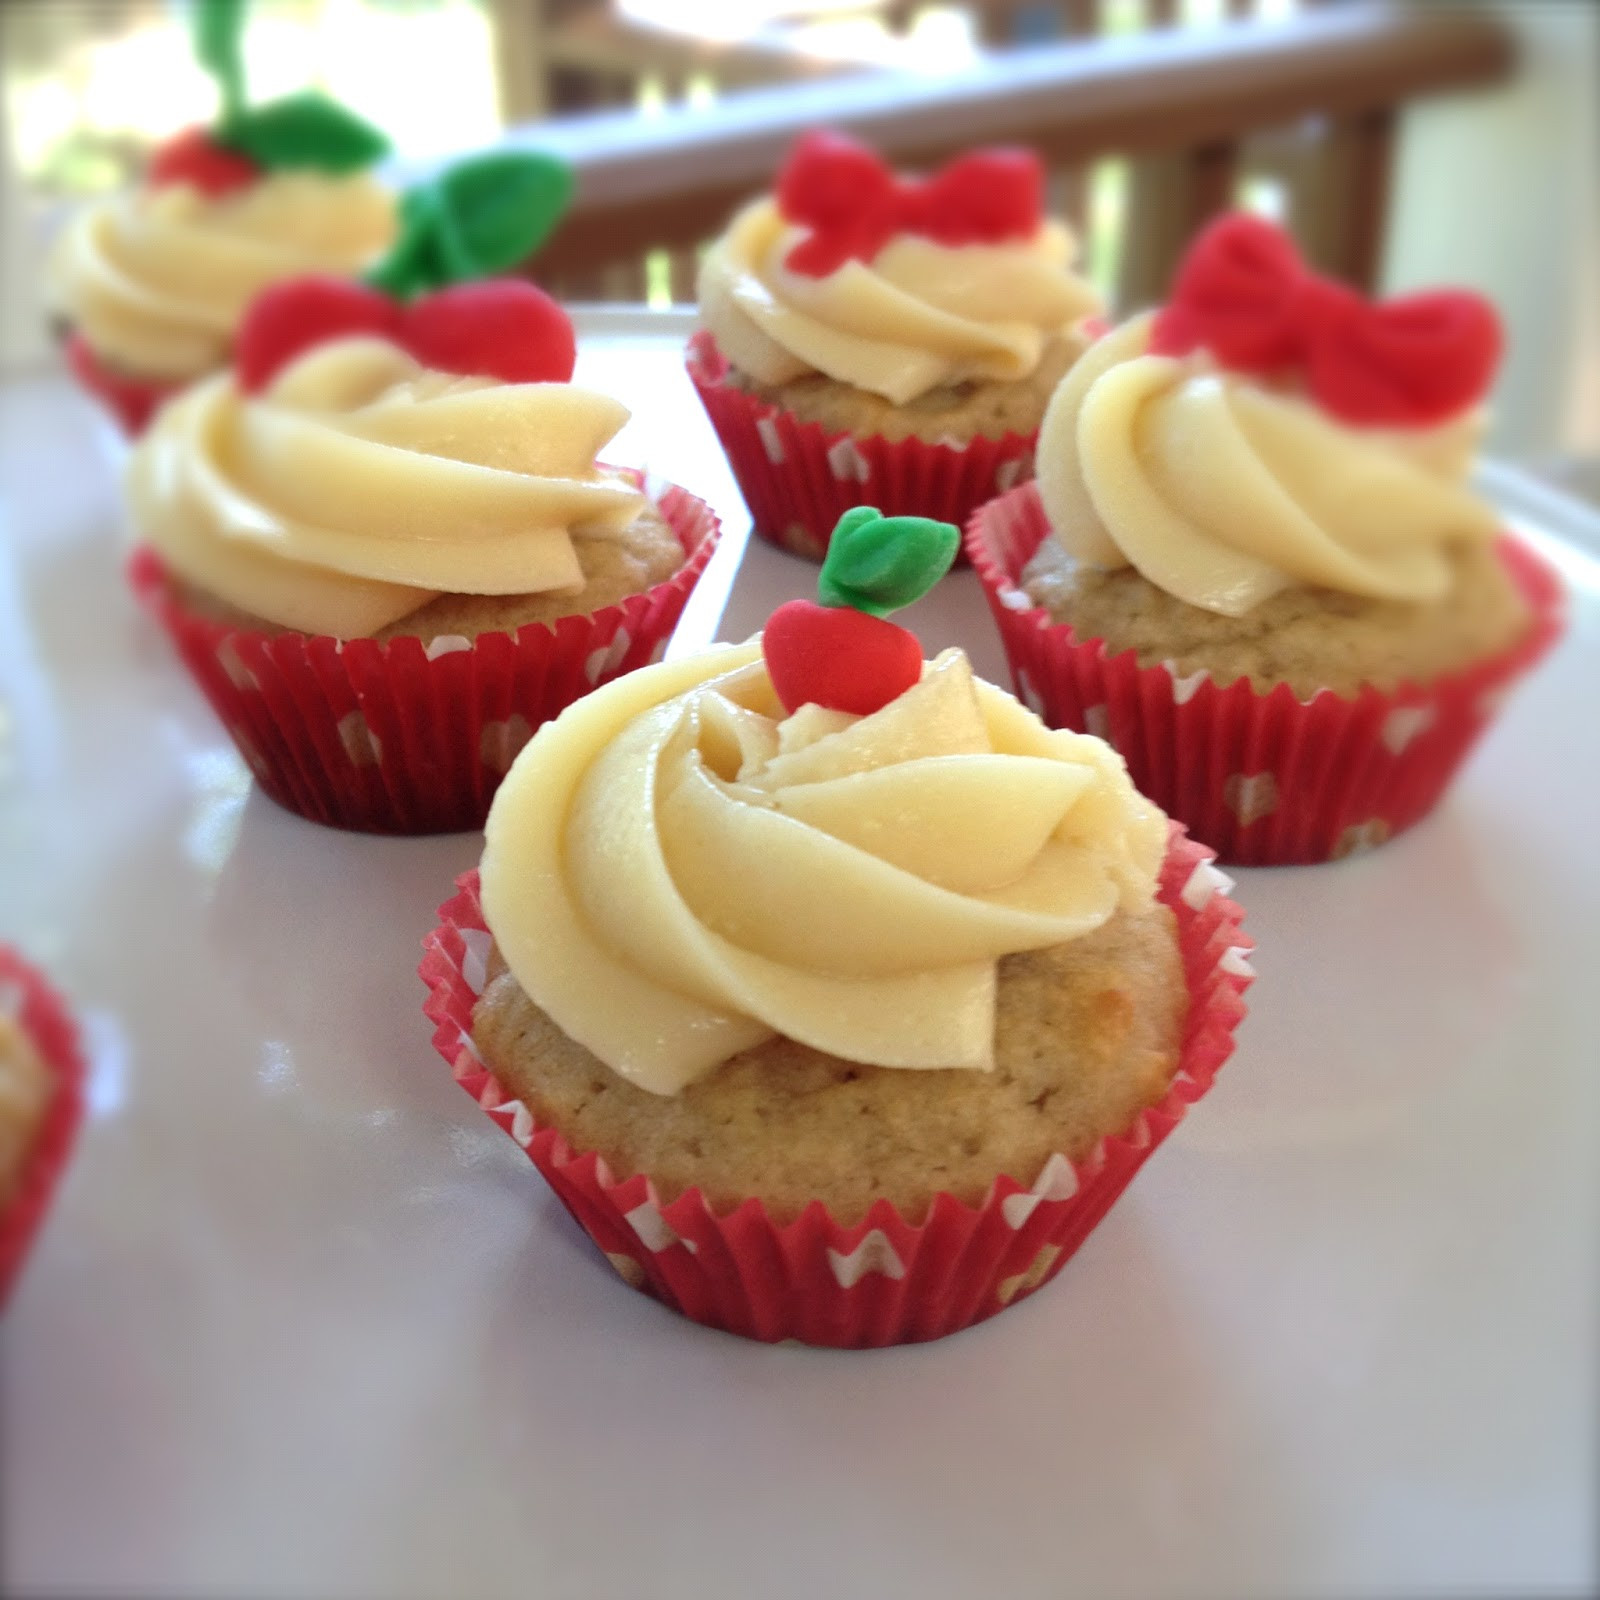 Healthy Strawberry Cupcakes  Evolution of a Party Strawberry Cupcakes The Healthy Way